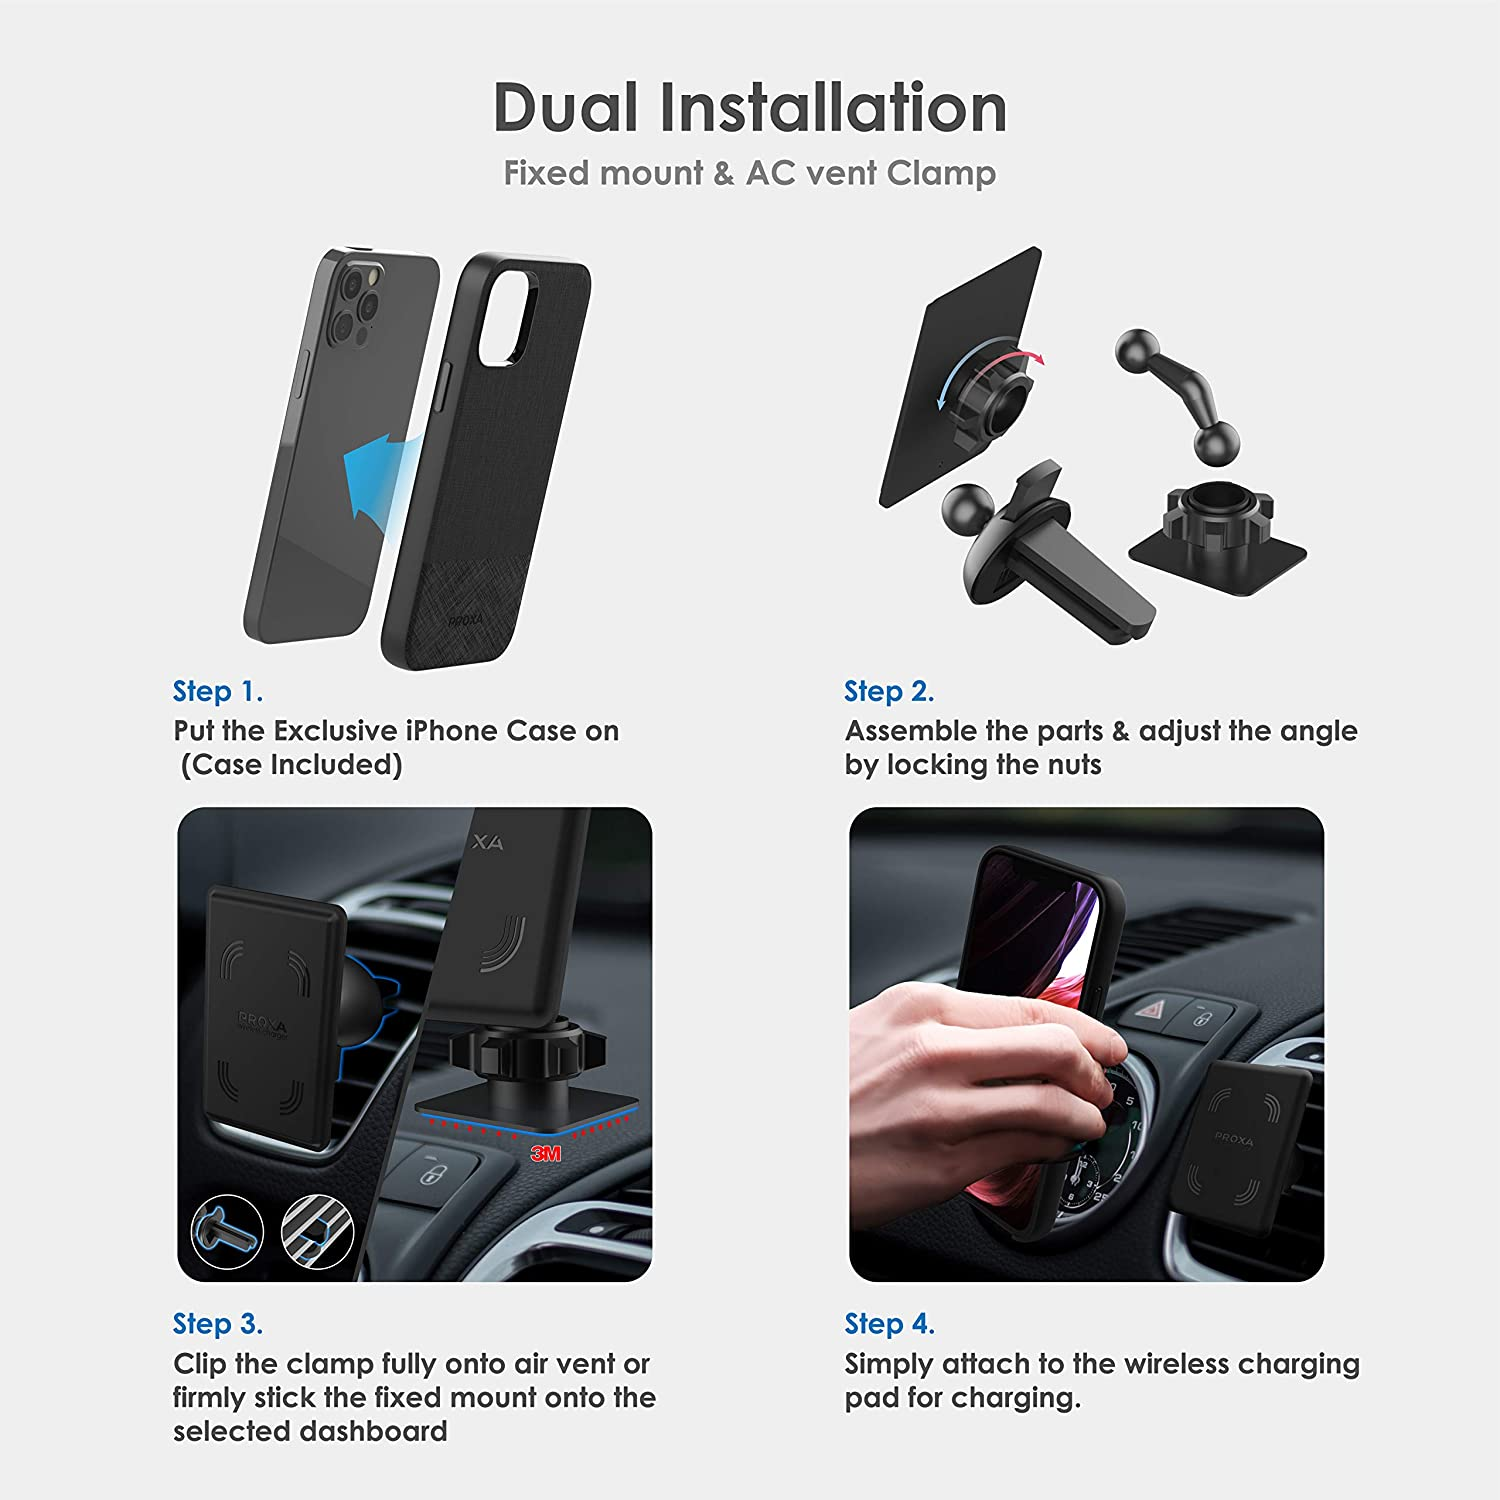 PROXA Magnetic Wireless Car Charger with 6.1 inch Case Designed for iPhone 12//12 Pro /&Dual Installation Mount/&Dual Port QC 3.0 Car Adapter-Compatible with iPhone 12//12 Pro MagSafe Compatible